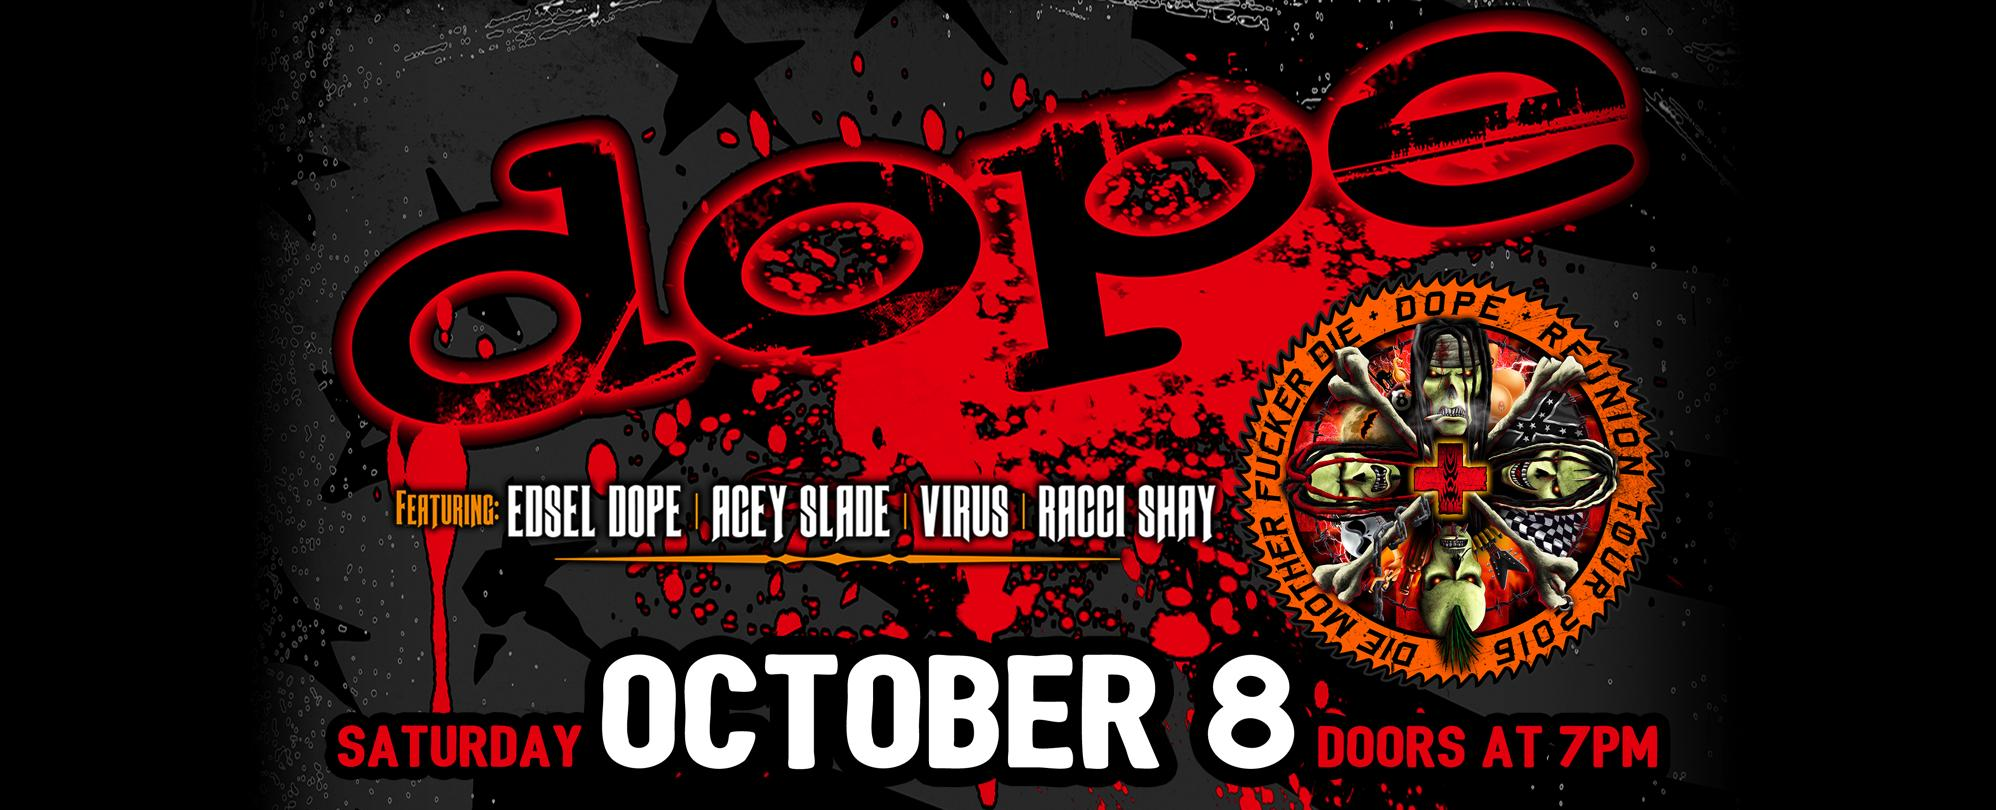 Dope Reunion Tour 2016 featuring Edsel Dope, Acey Slade, Virus, Racci Shay